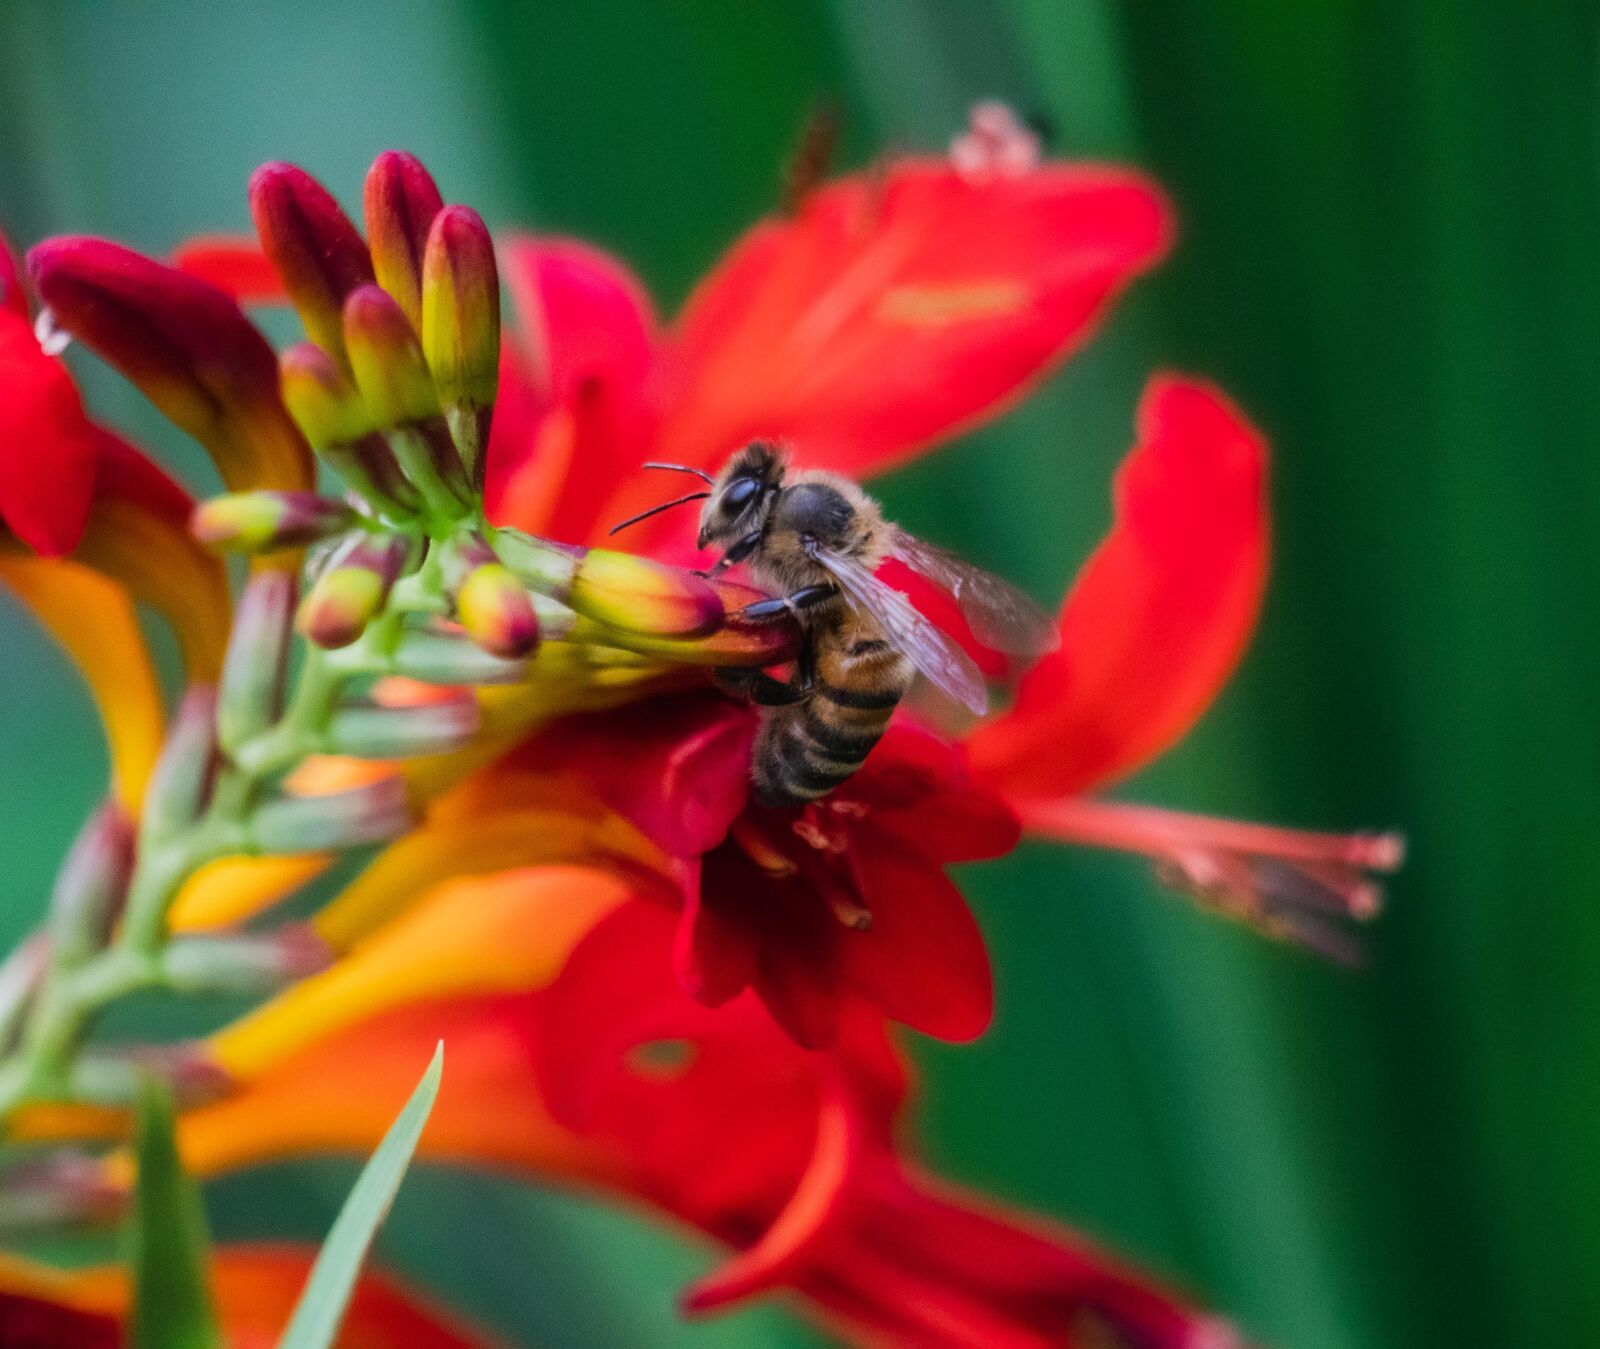 """Sony a6300 sample photo. """"Bee, insect, wings"""" photography"""